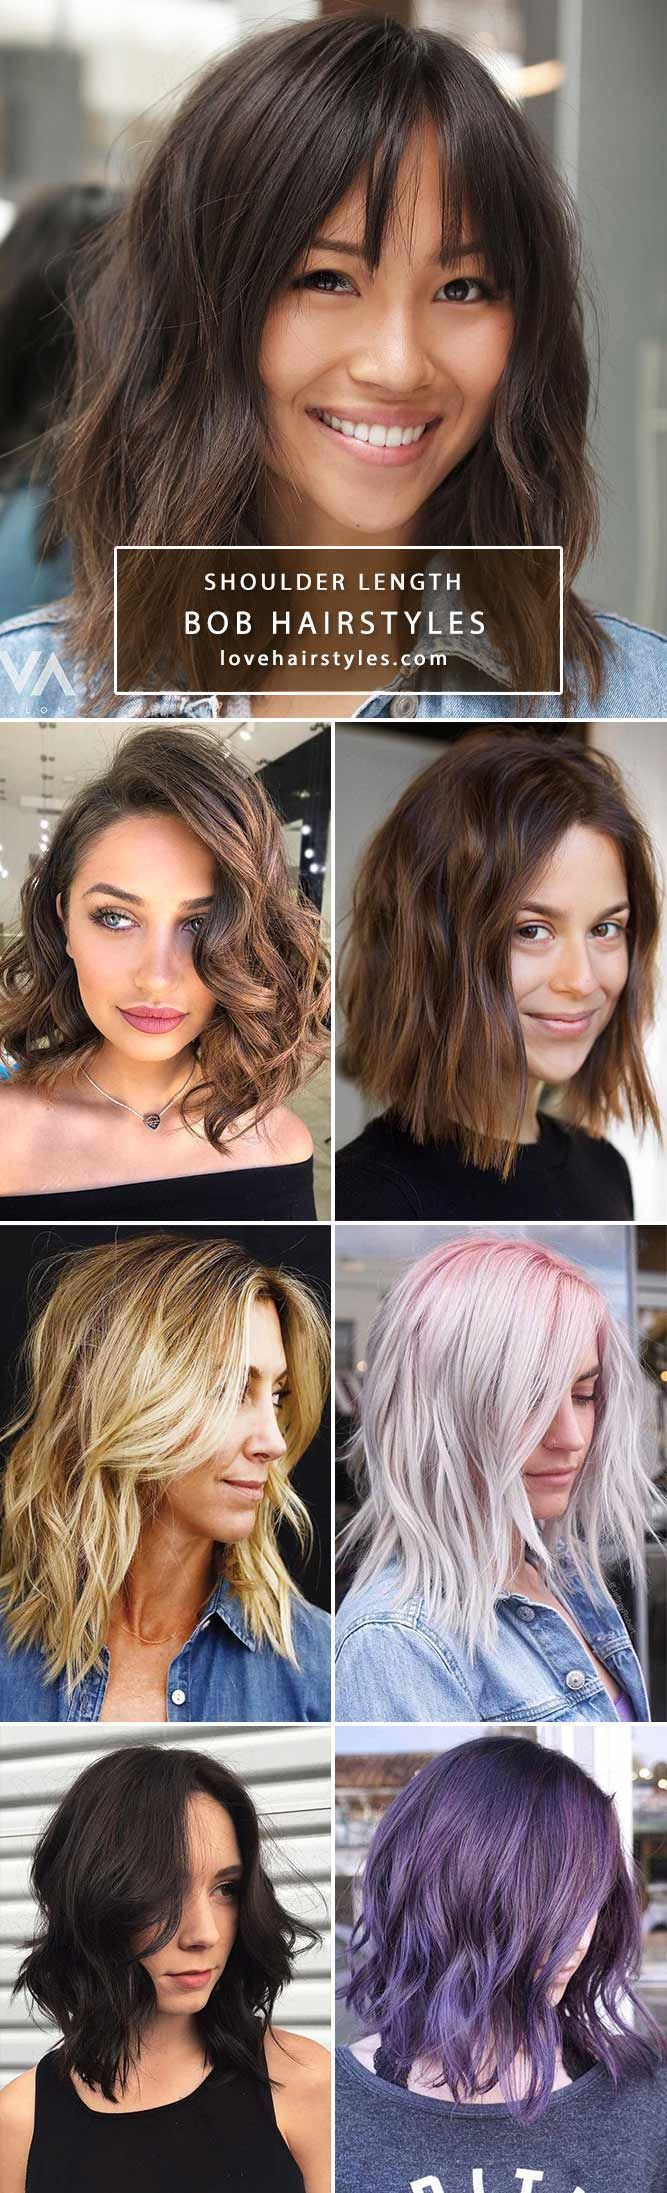 ❤️ Explore the shoulder length bob hairstyles for thin and thick hair! Looking for a nice haircut with fringe? Best bob hairstyles with bangs are